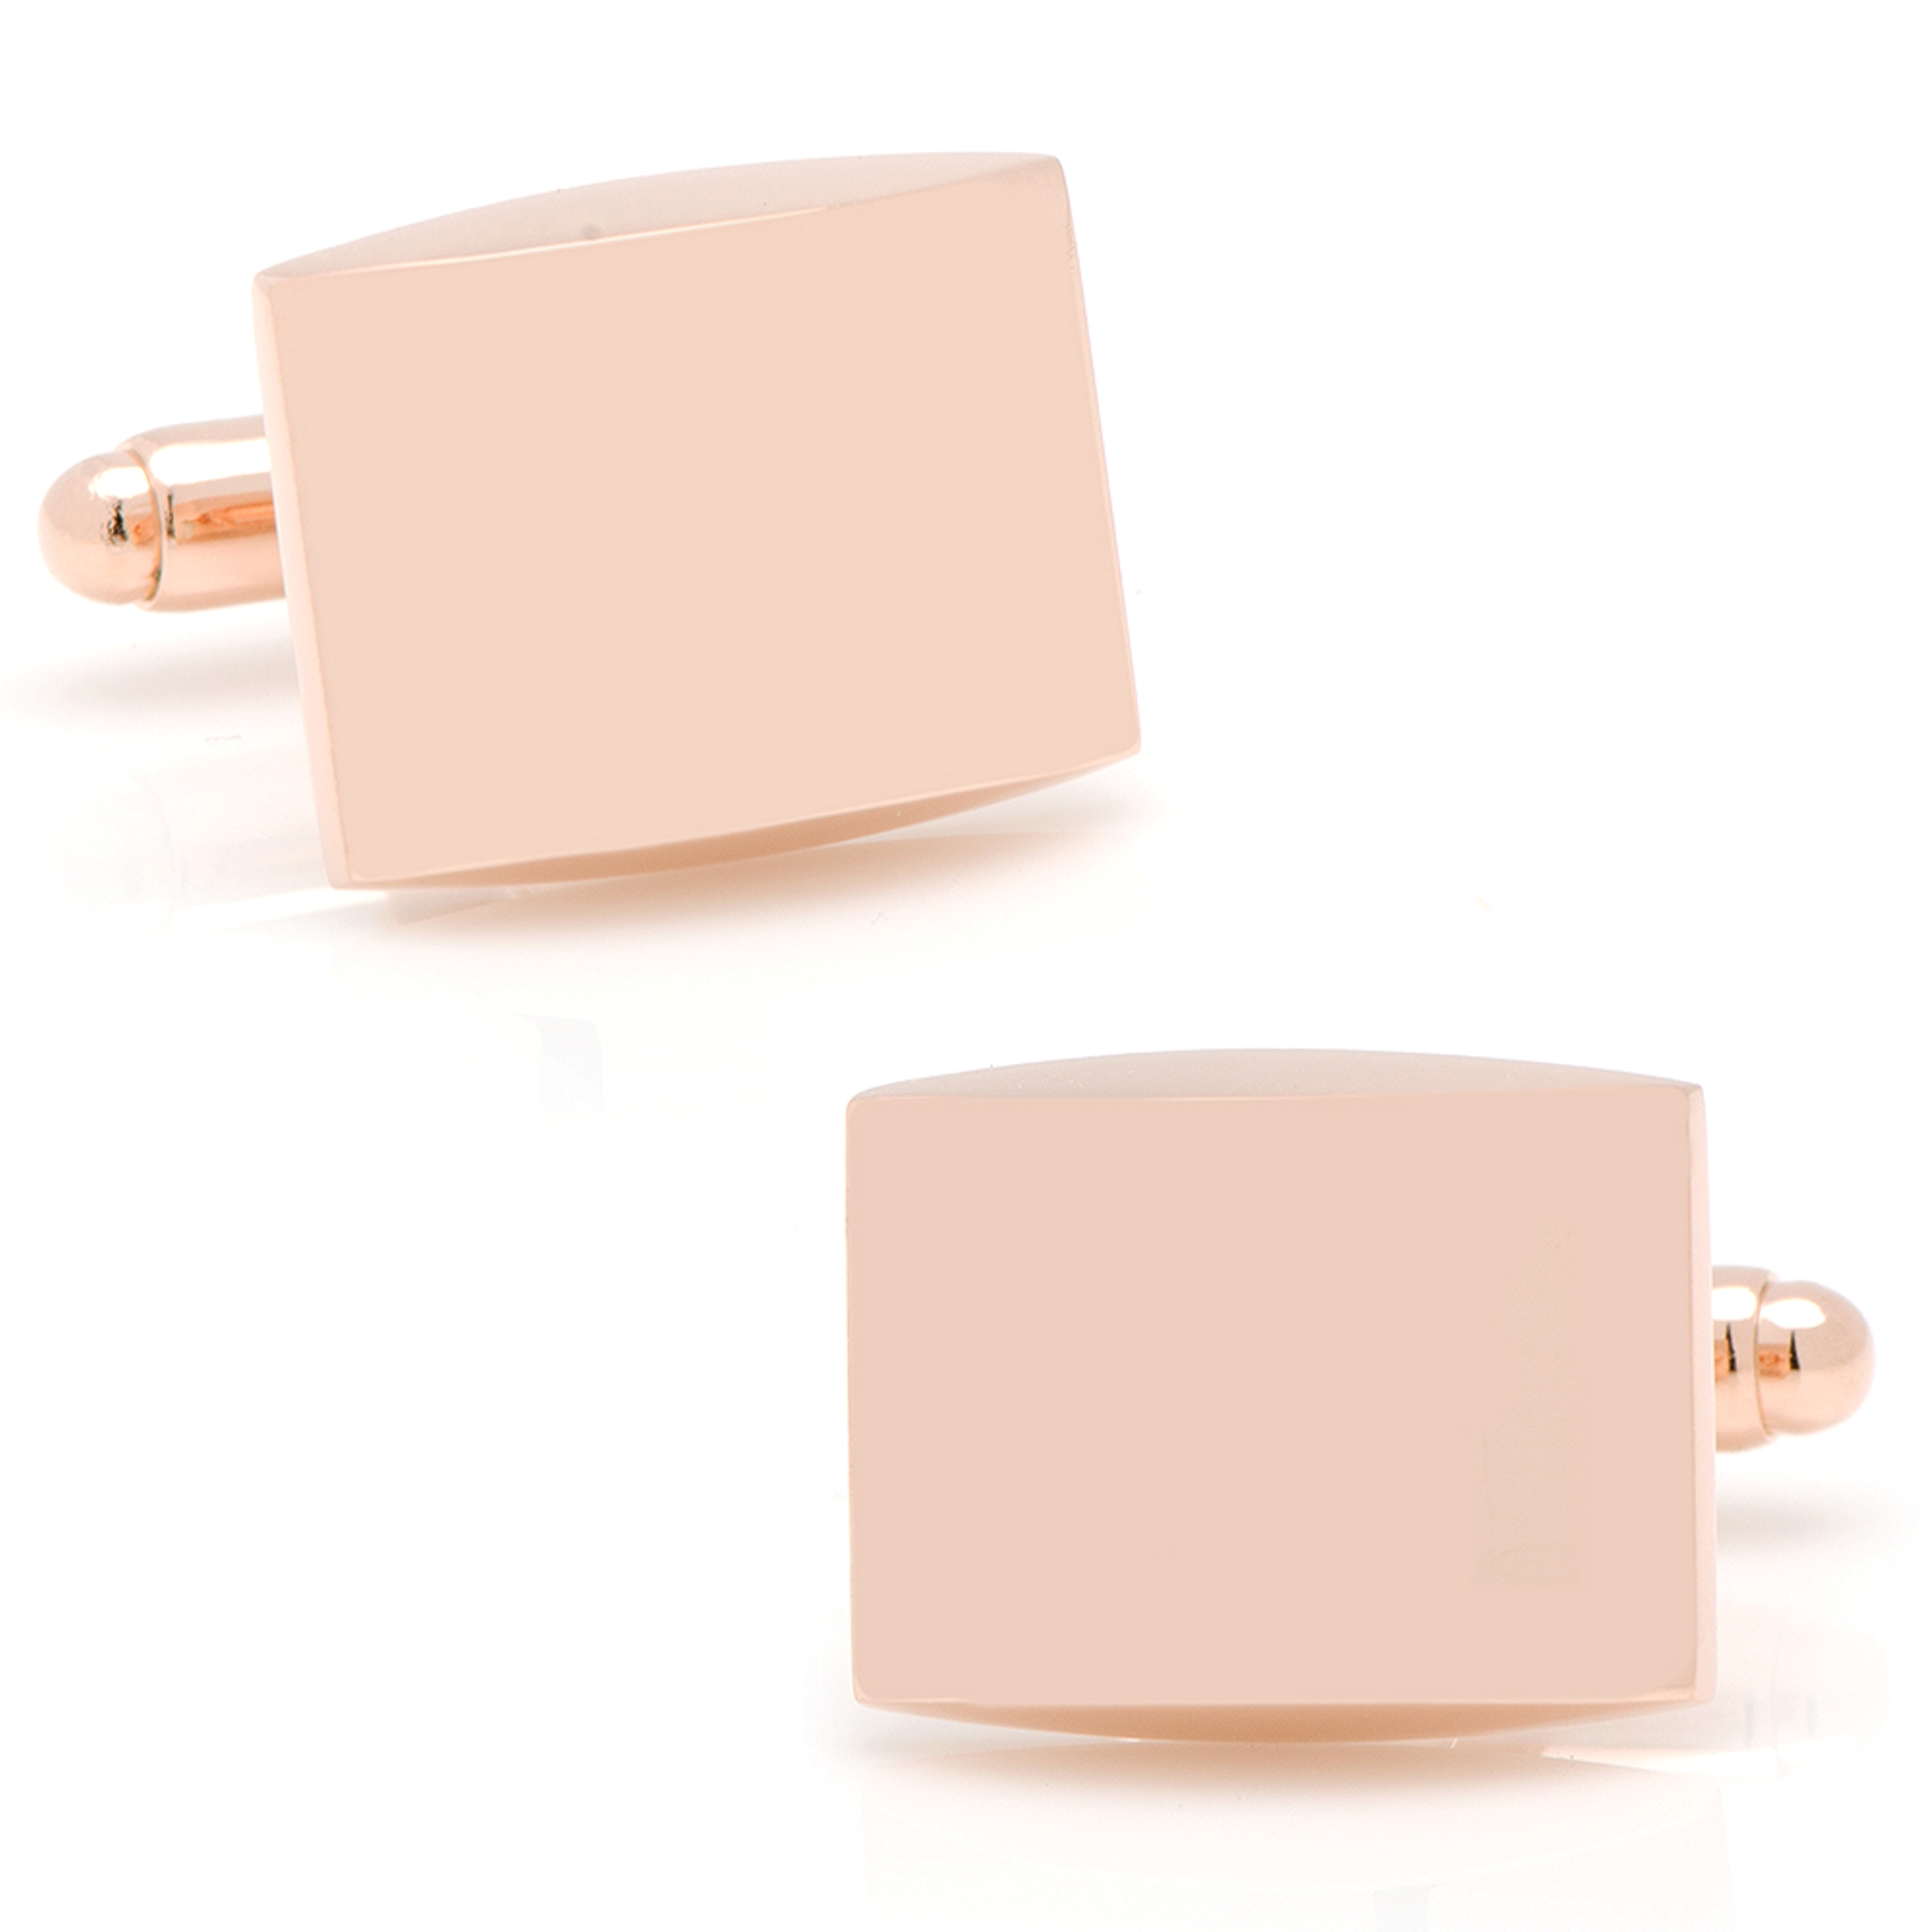 Ox and Bull Stainless Steel Curved Rose Gold-Tone Engravable Fashion Cufflinks